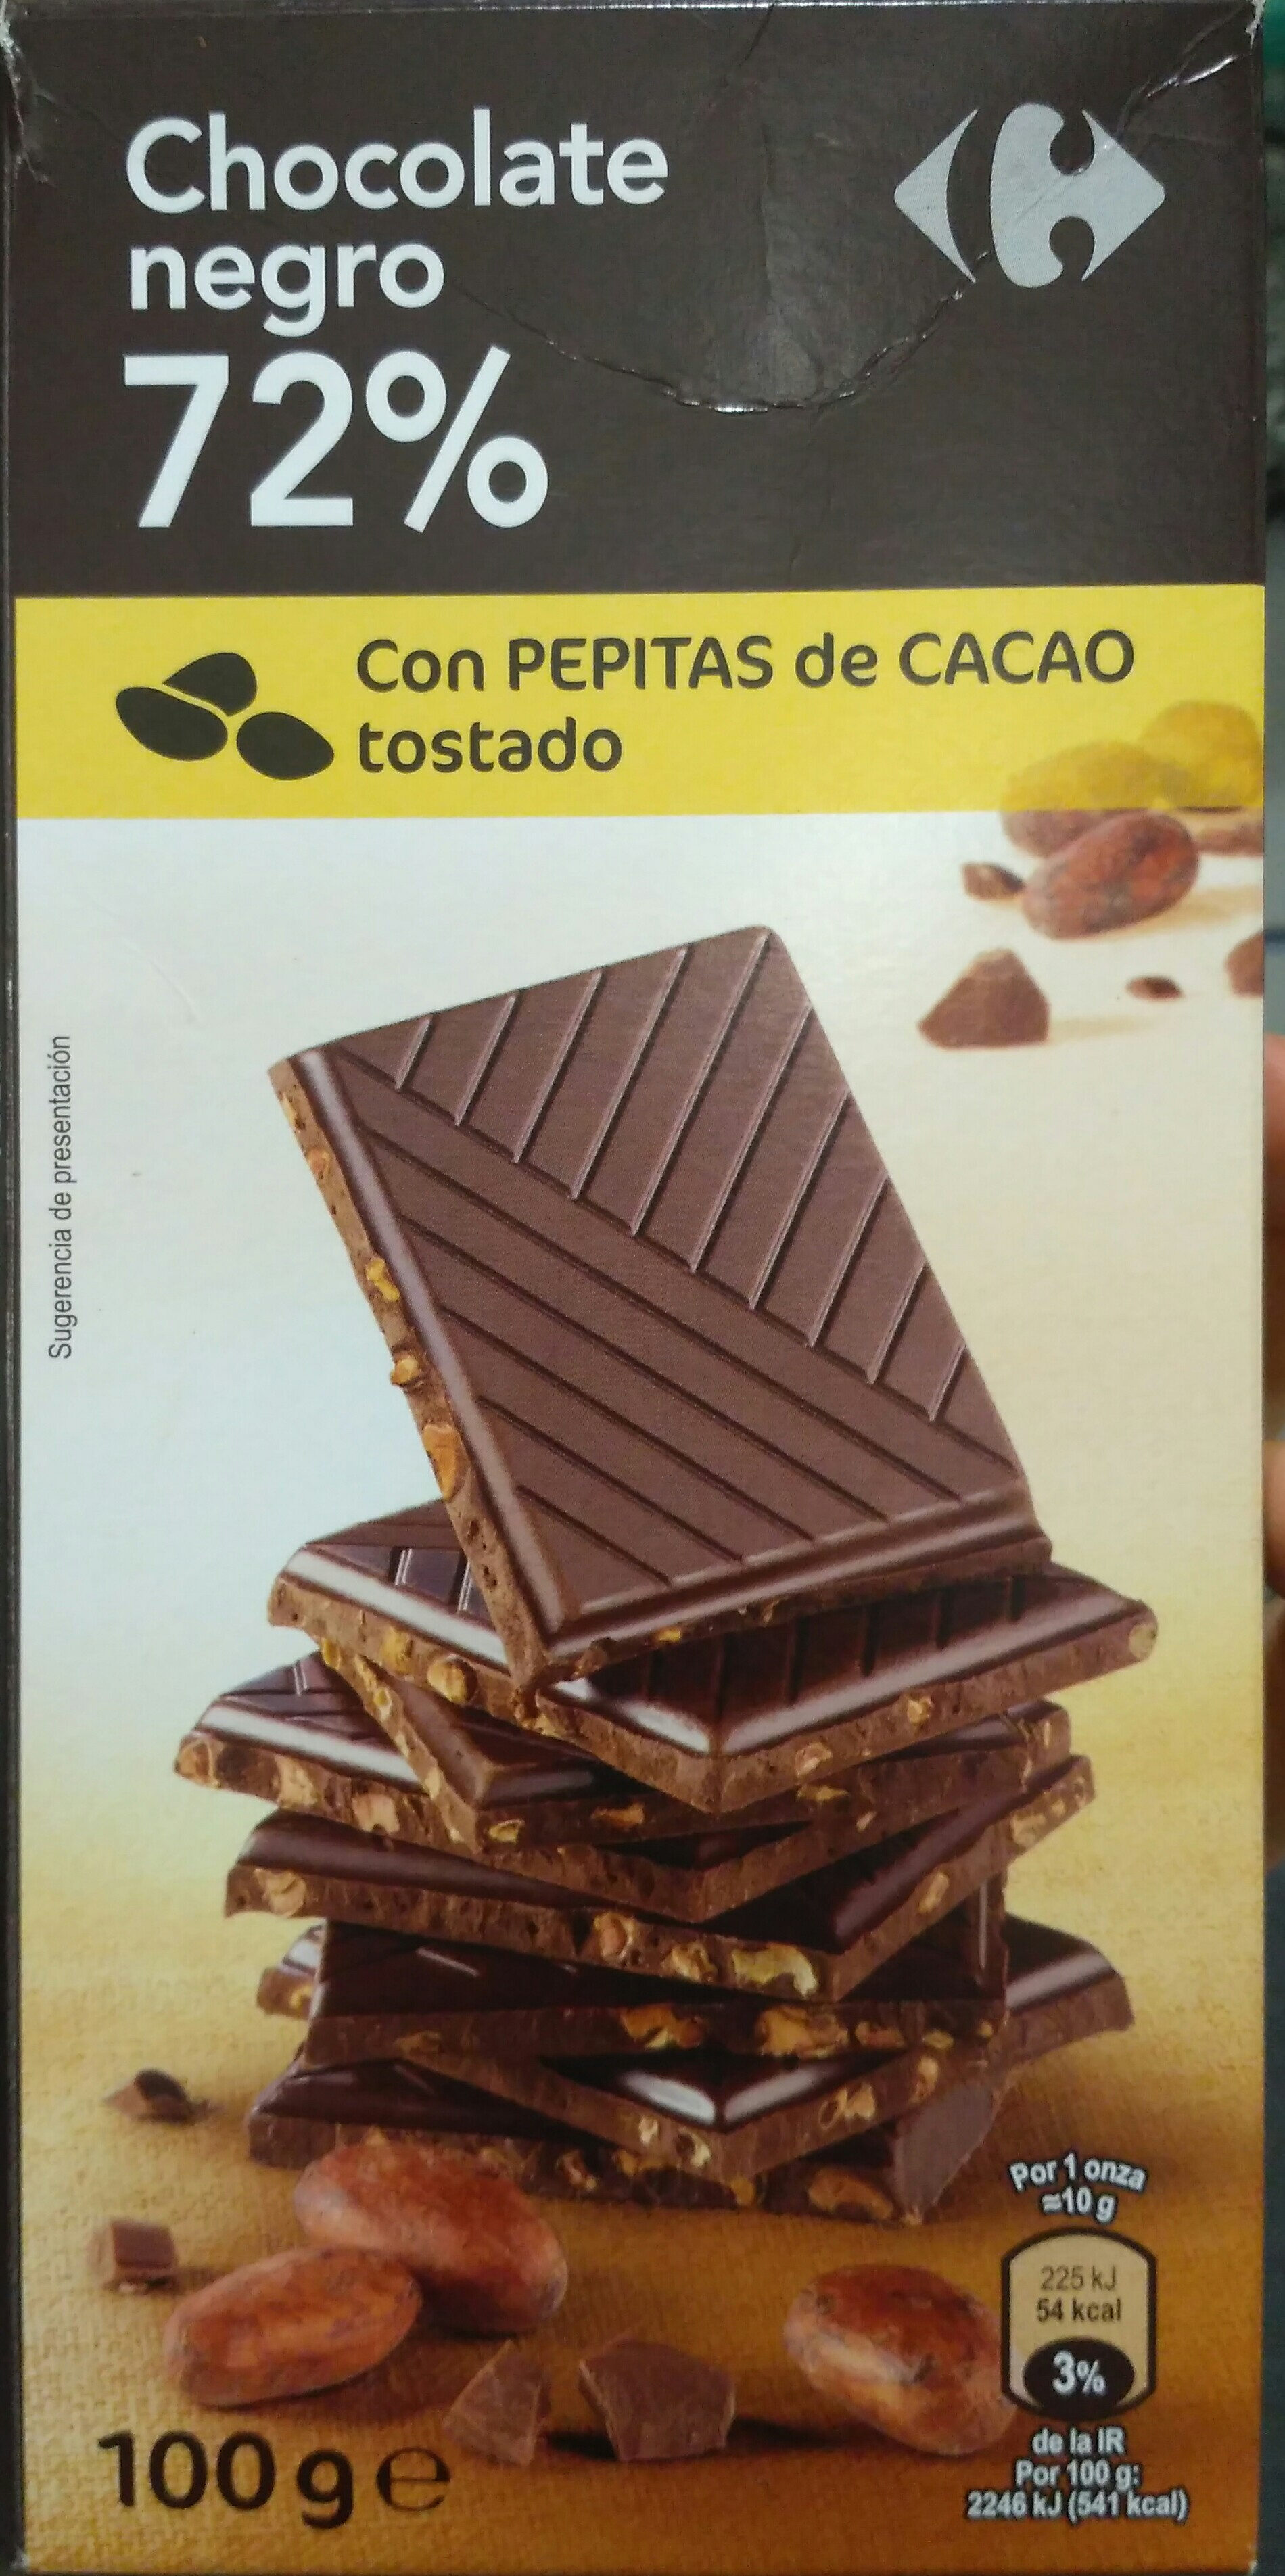 Chocolate negro 72% - Producte - es